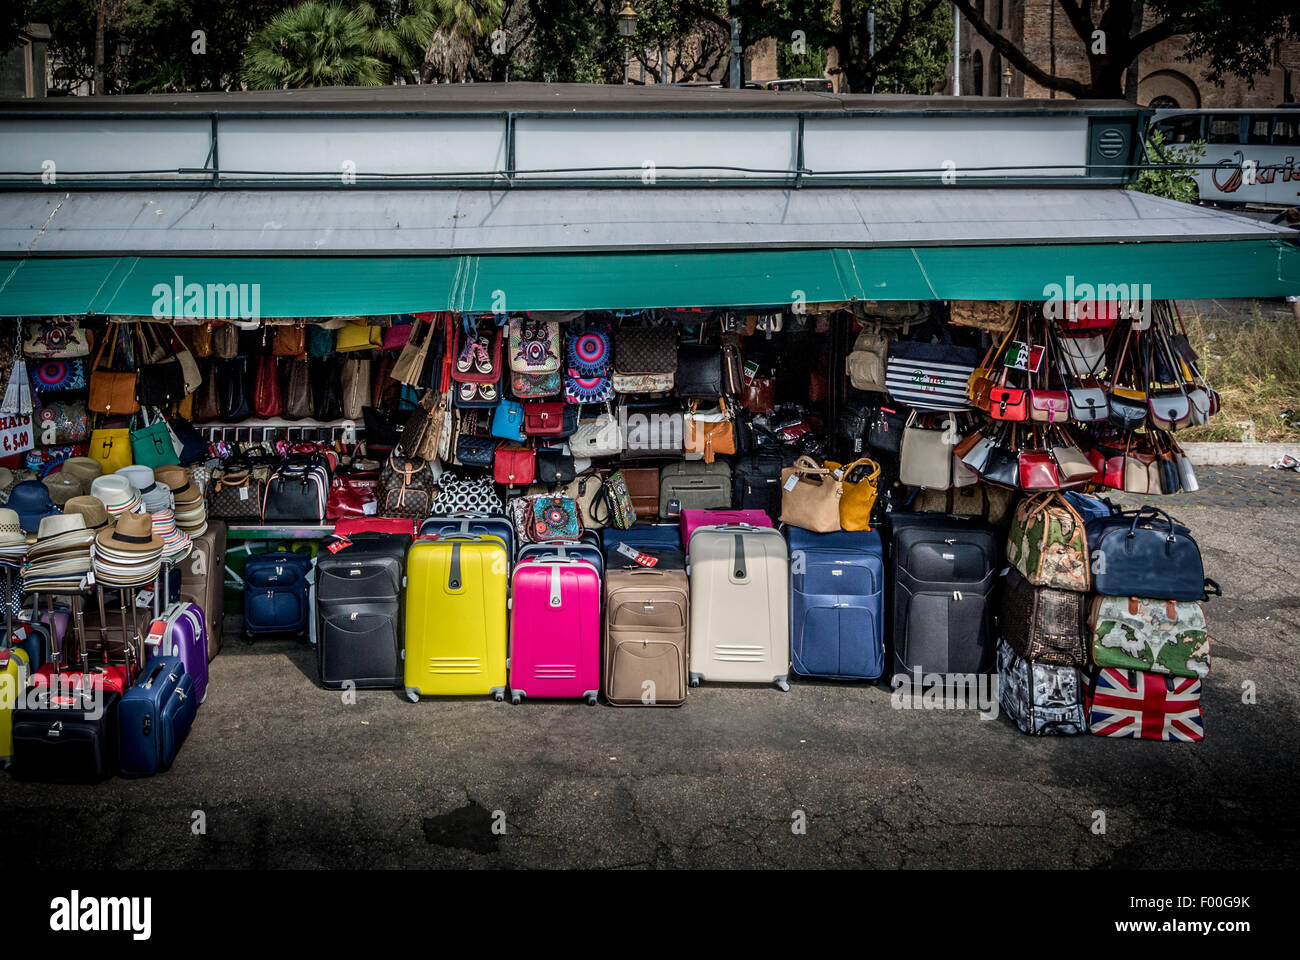 Street stall selling suitcases and bags. Rome. Italy. - Stock Image